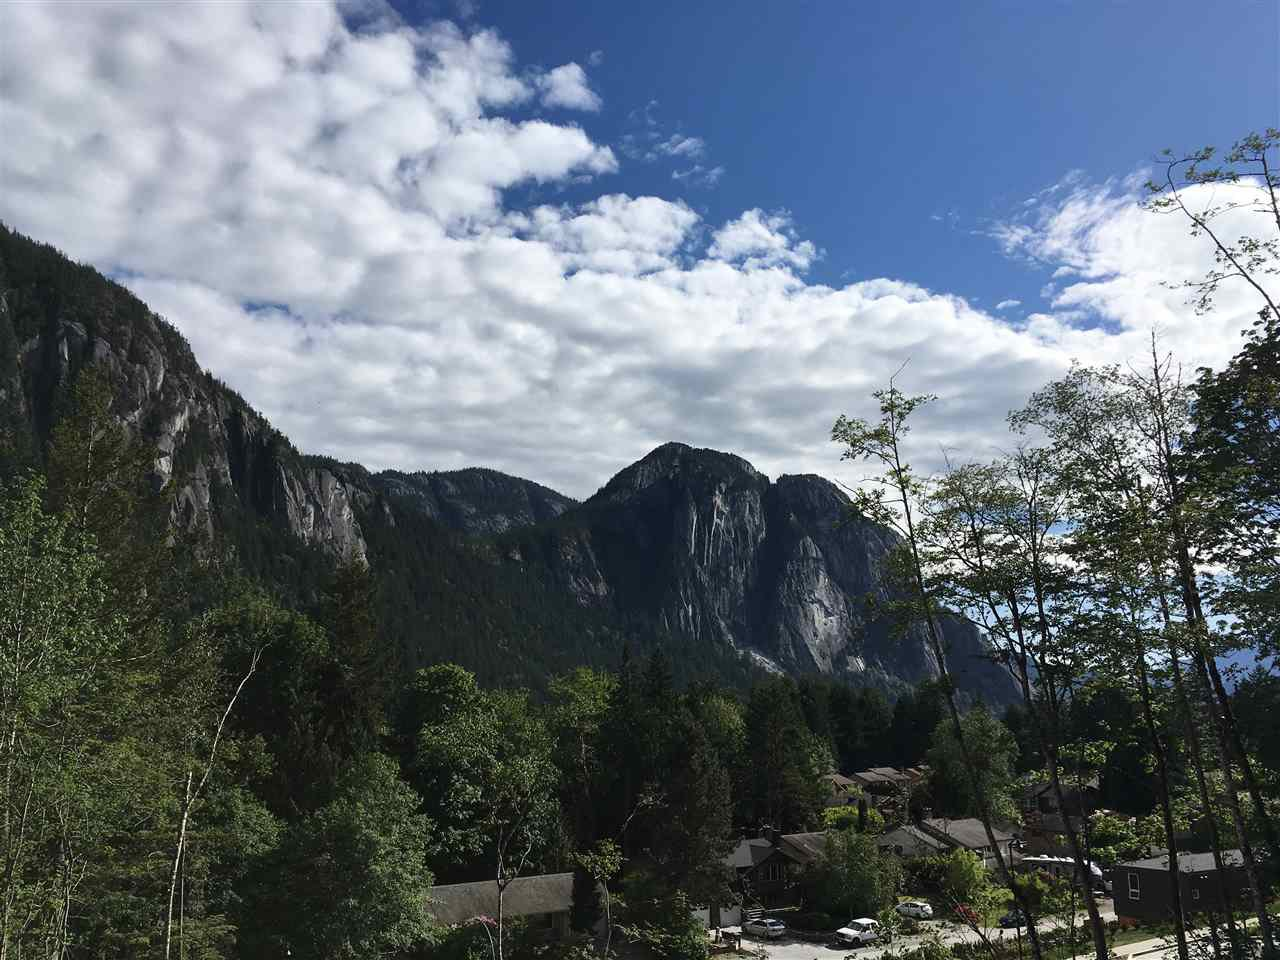 Main Photo: 2222 WINDSAIL PLACE in Squamish: Plateau Land for sale : MLS®# R2068451